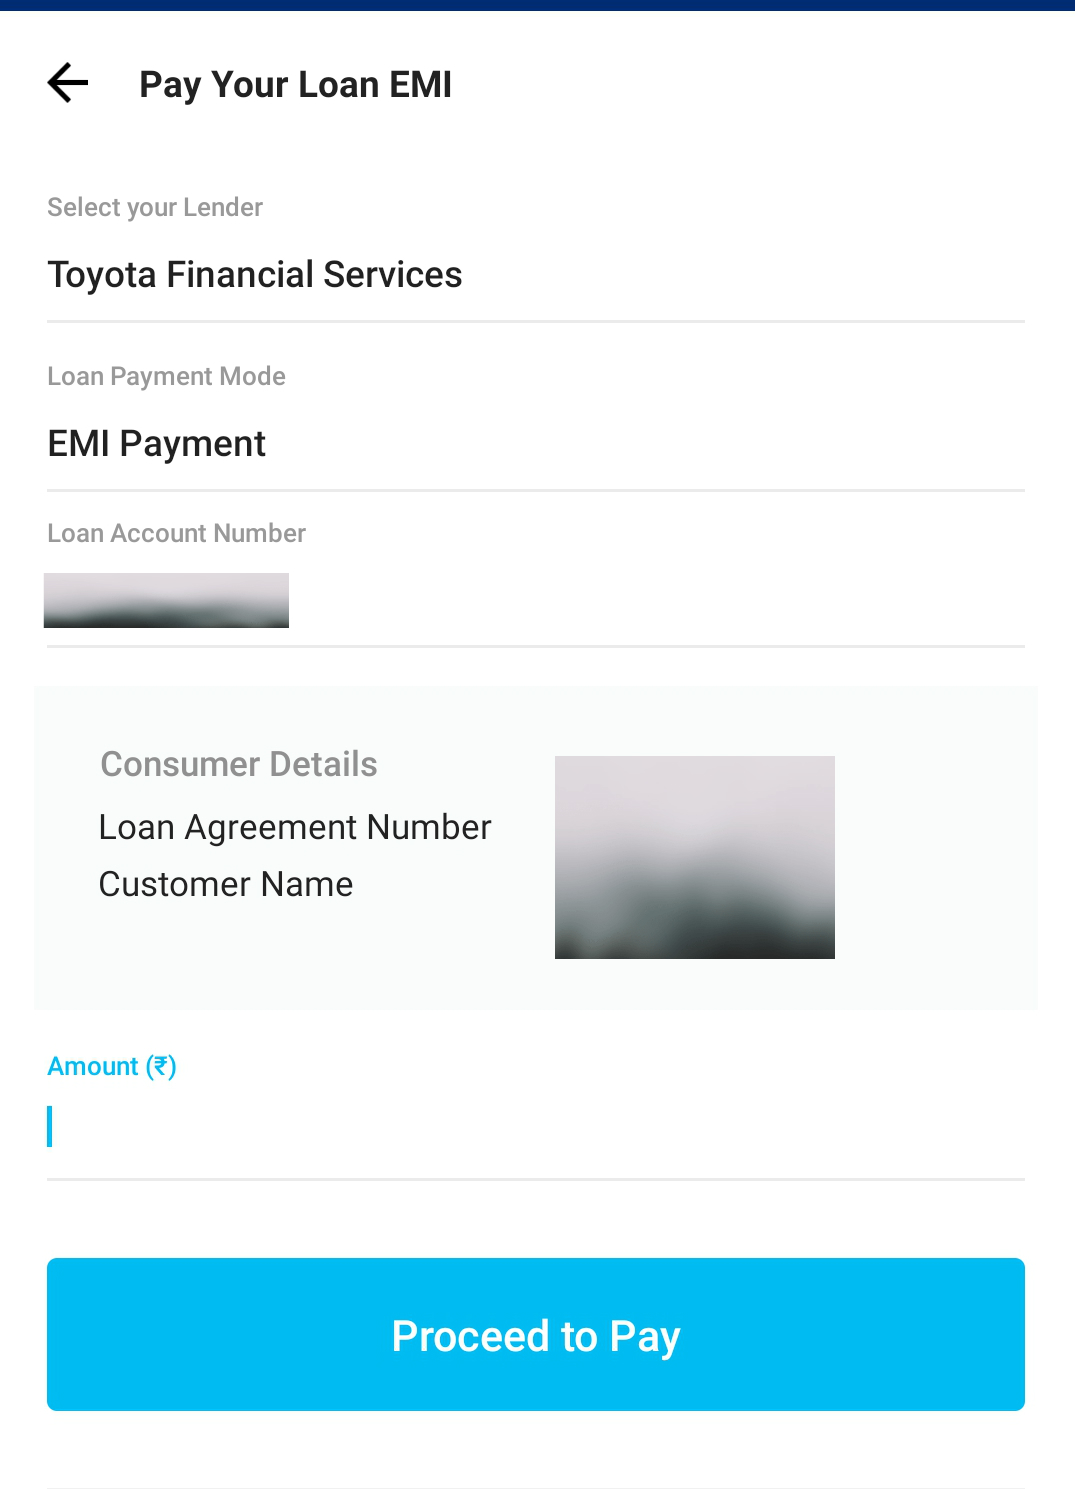 Paytm Toyota Financial Services Loan Payment